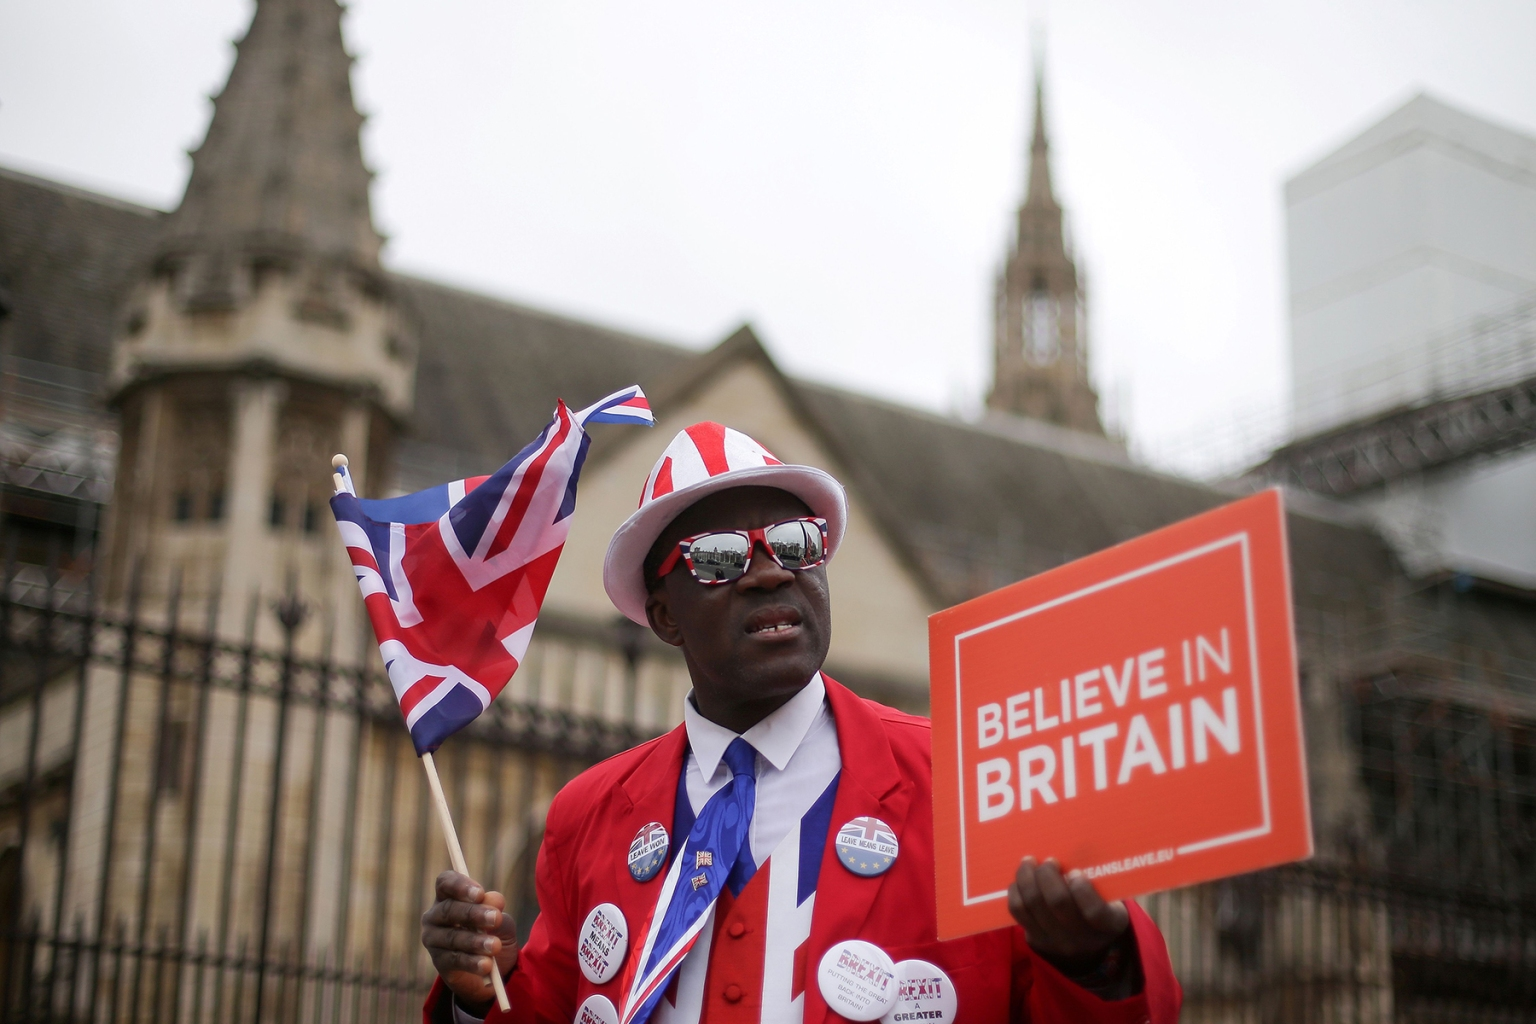 Pro-Brexit activist Joseph Afrane demonstrates outside the Houses of Parliament in central London on March 20. (Daniel Leal-Olivas/AFP/Getty Images)